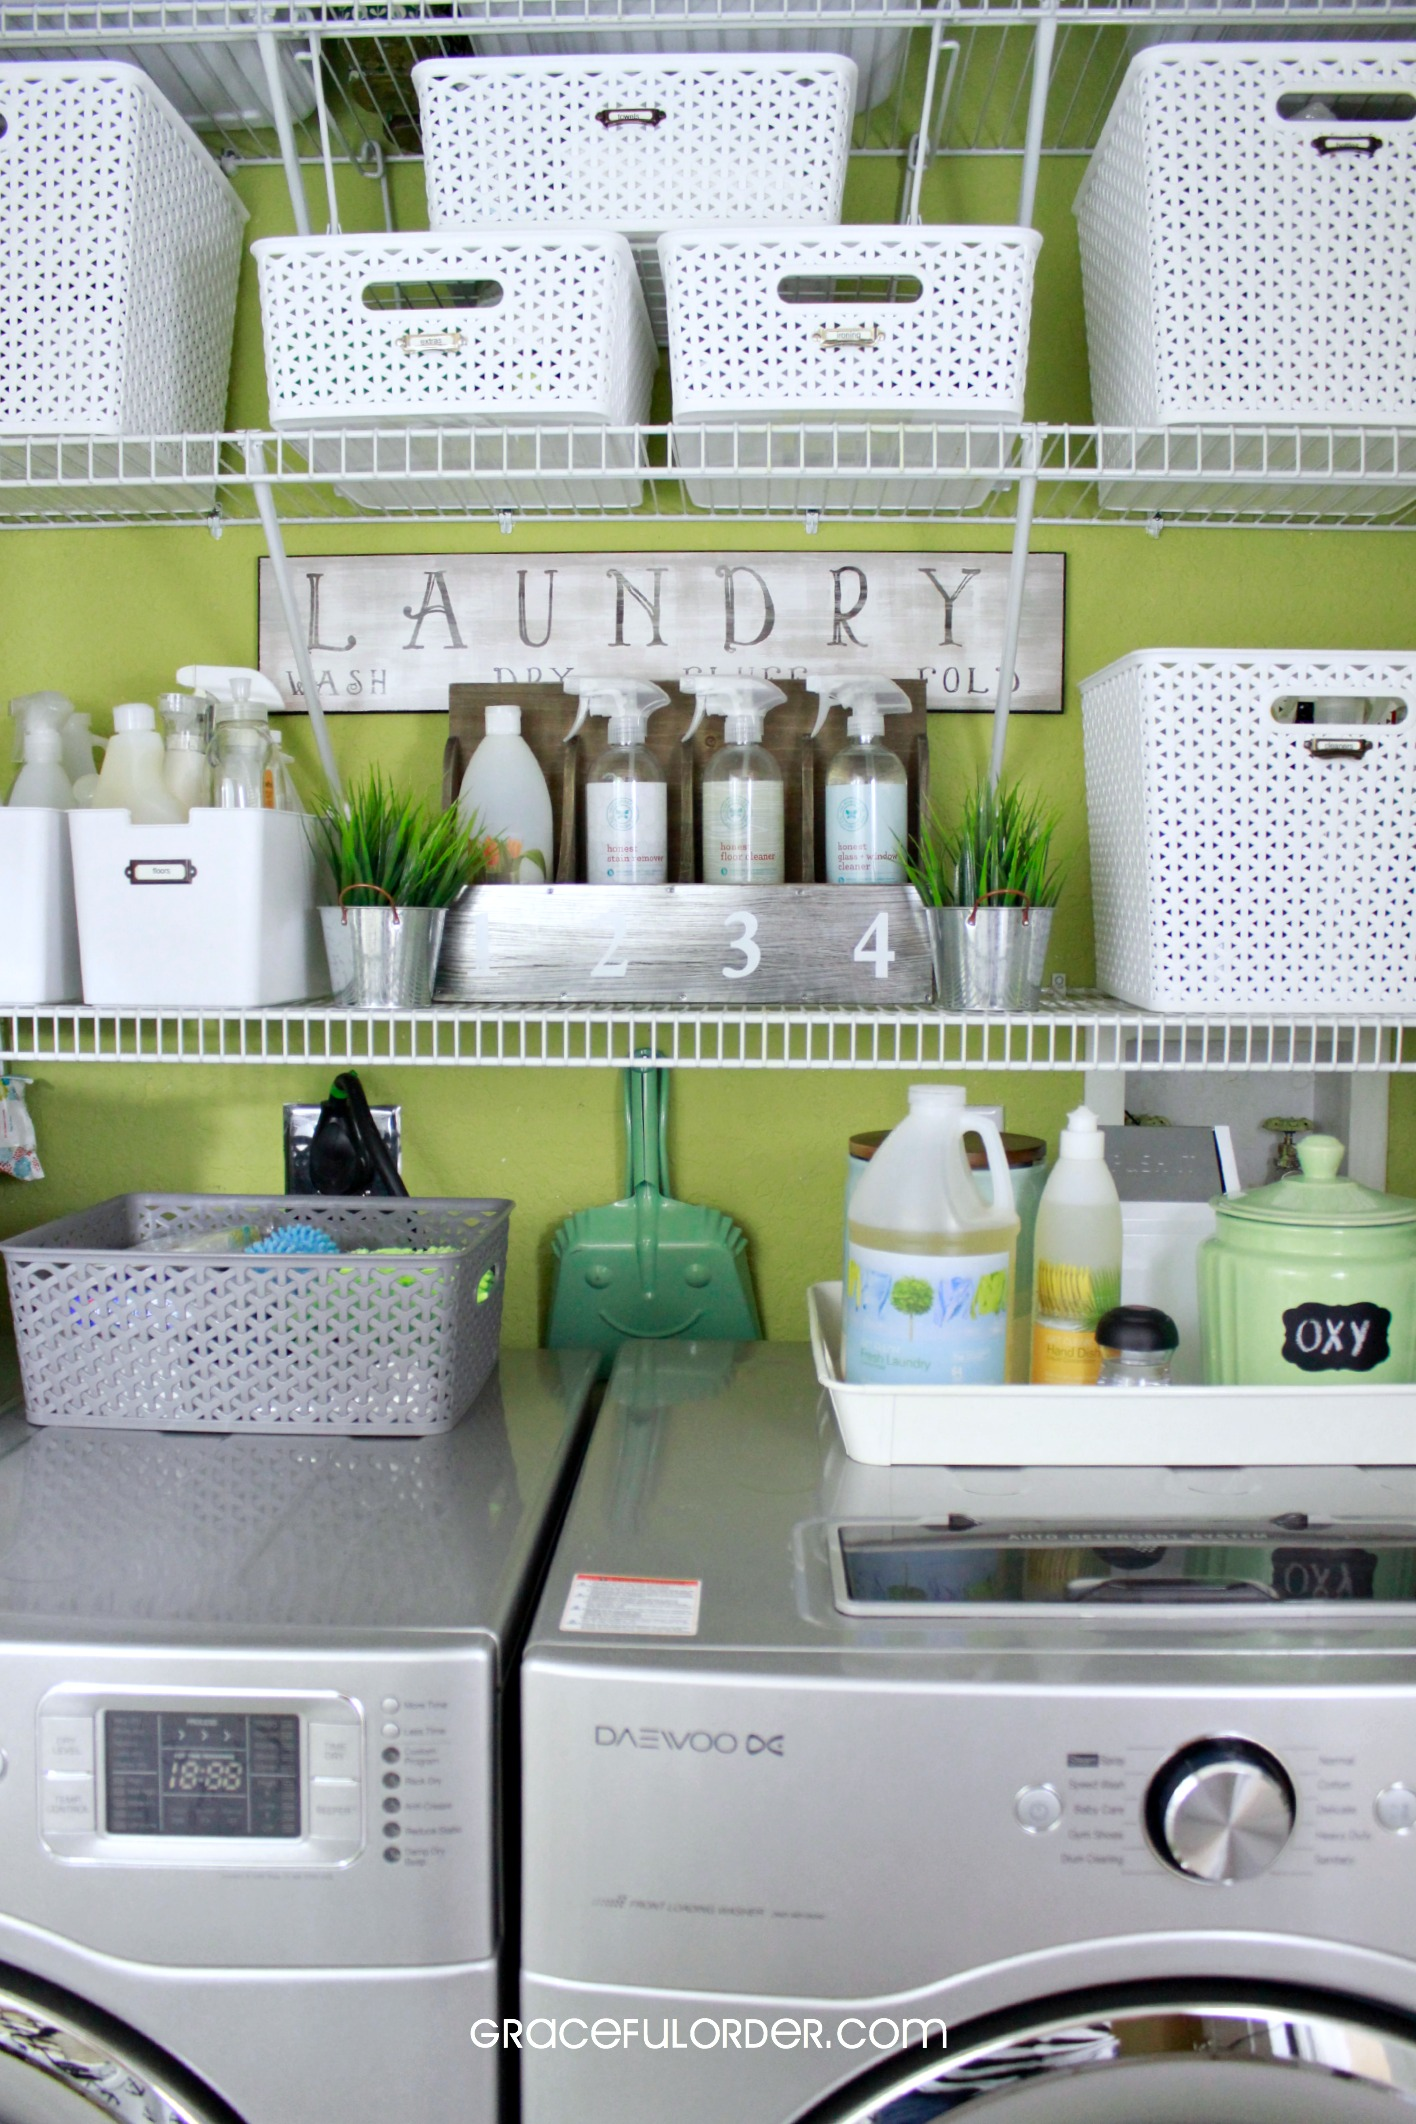 laundry room organization ideas graceful order